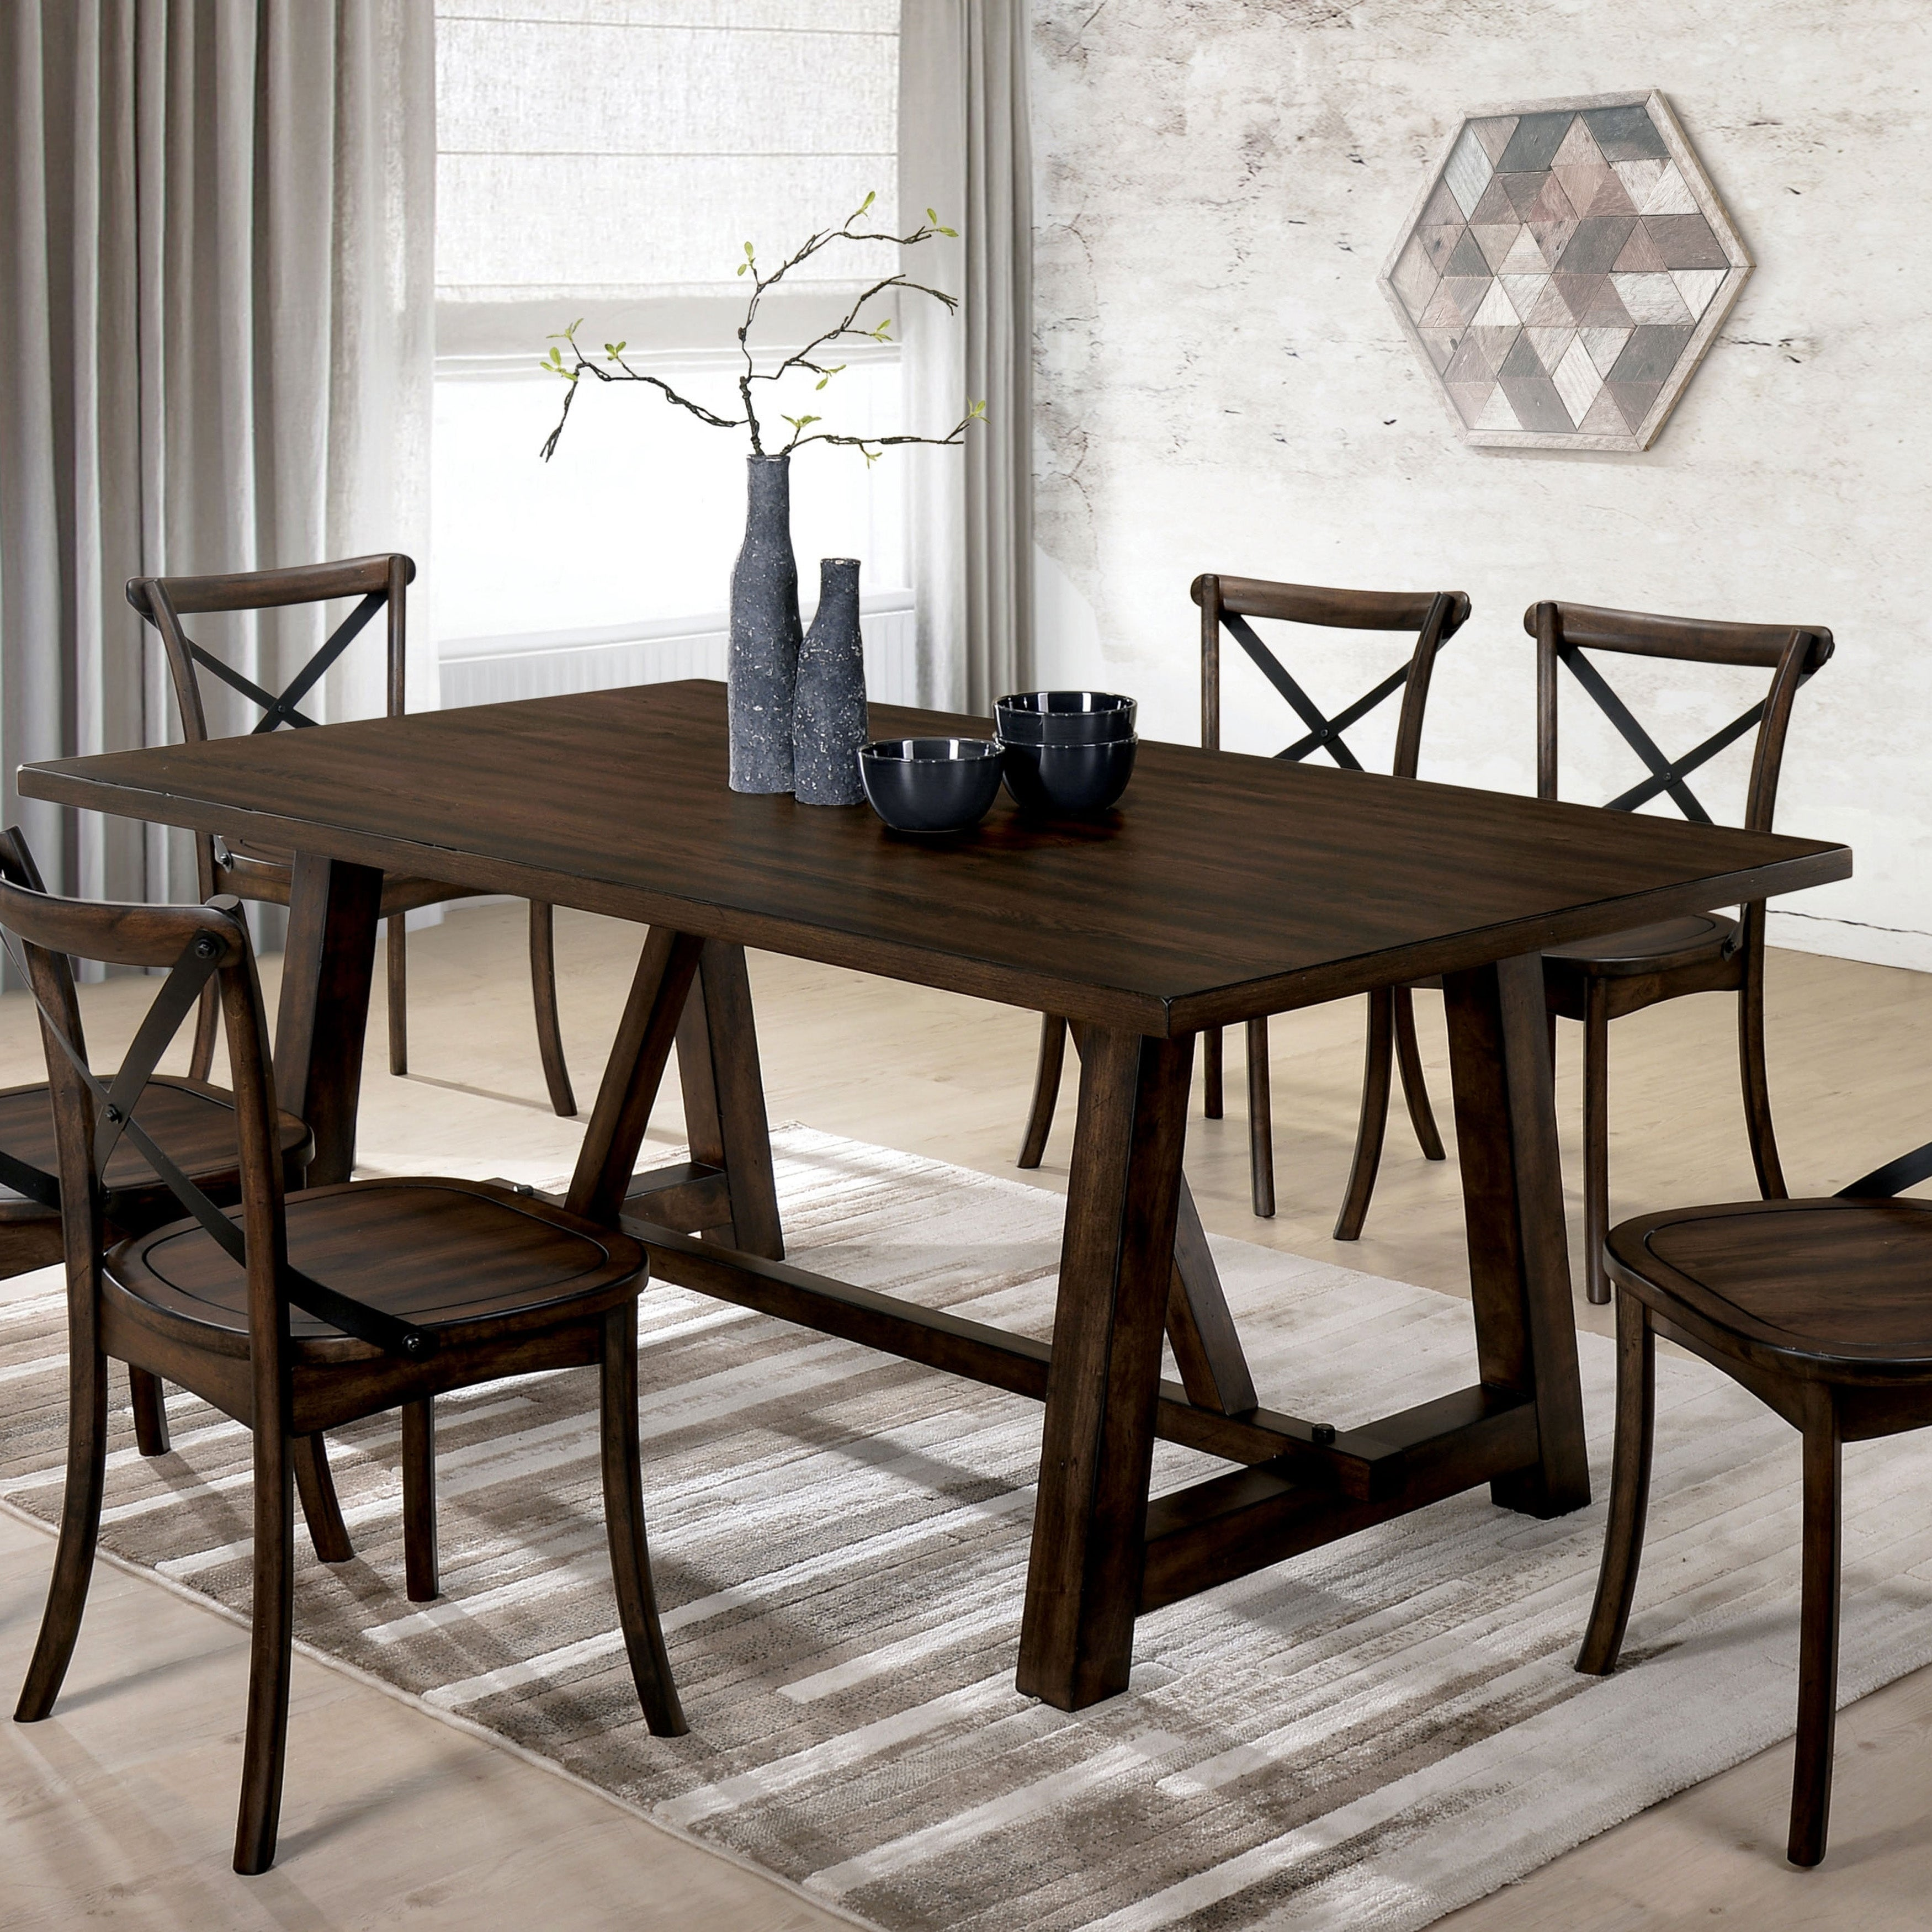 Carson Carrington Breisgau Modern Farmhouse Dining Table